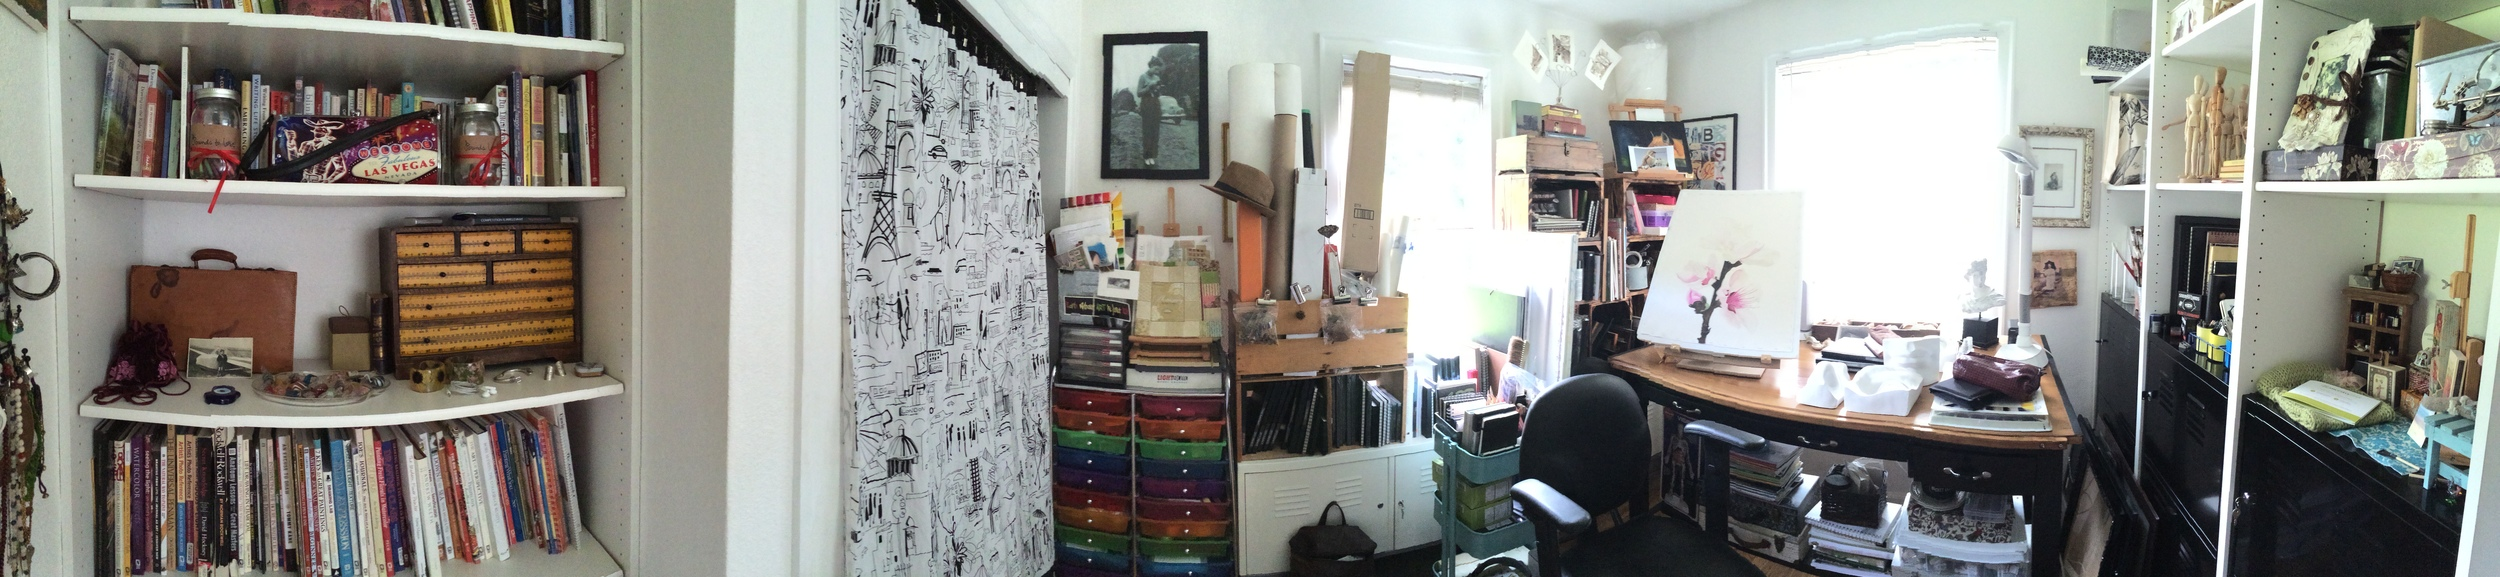 My studio, crammed with things I love: books, supplies, cast models, shells, and sunlight.